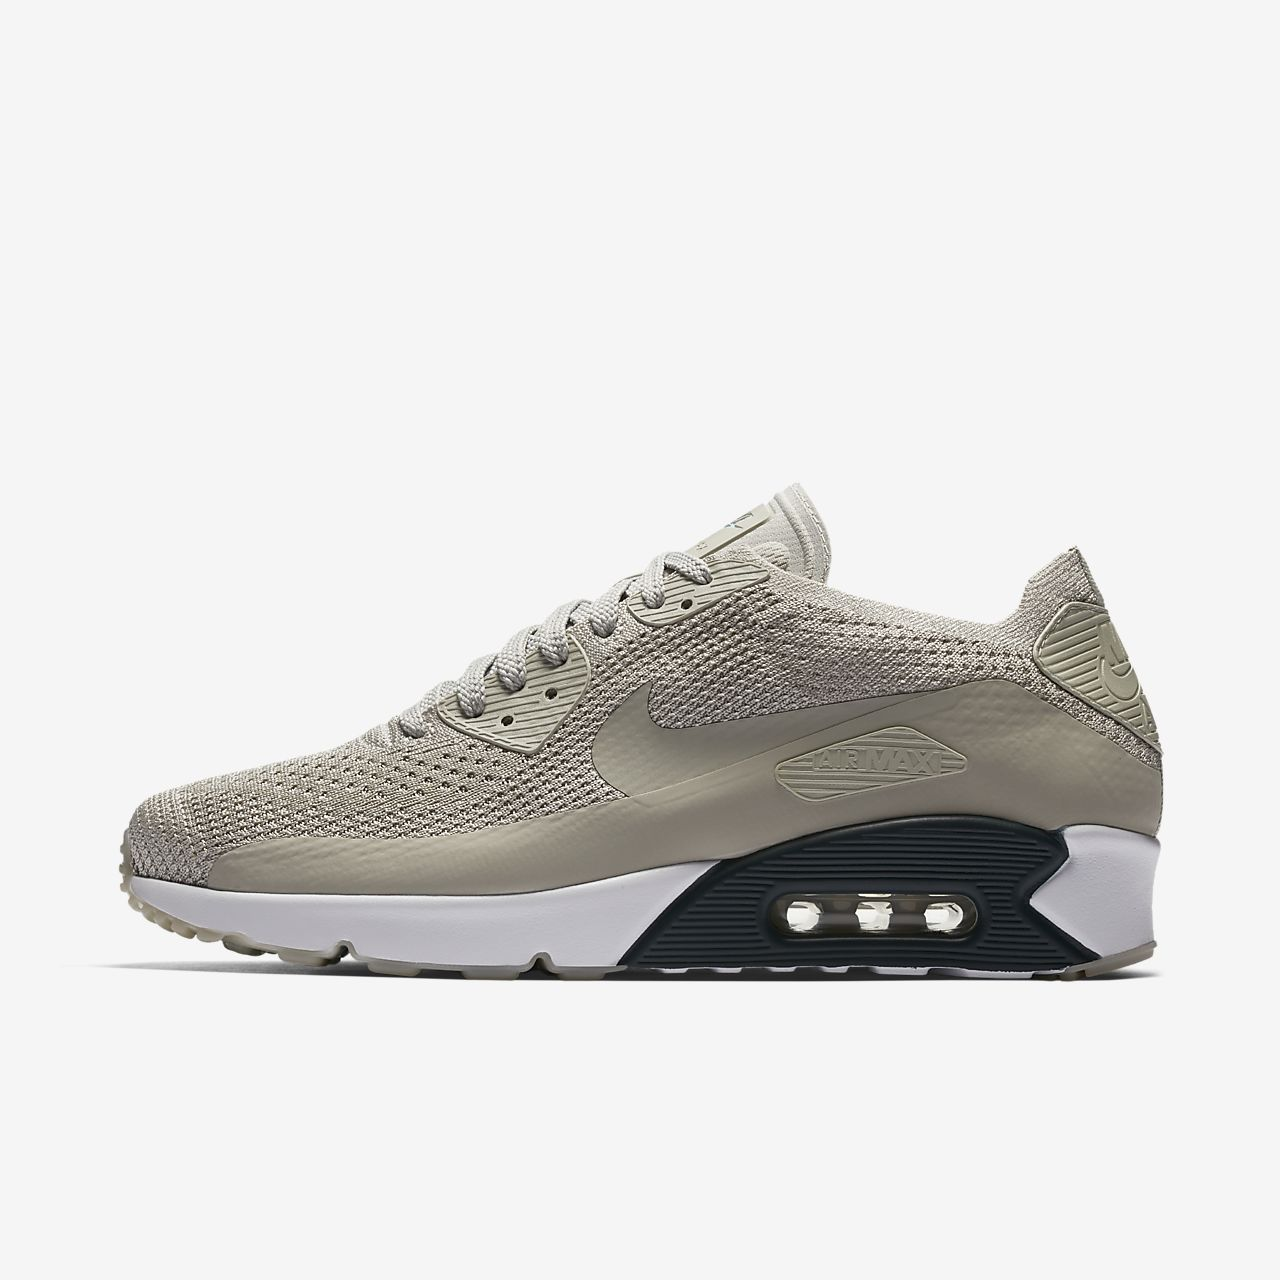 ... Nike Air Max 90 Ultra 2.0 Flyknit Herrenschuh